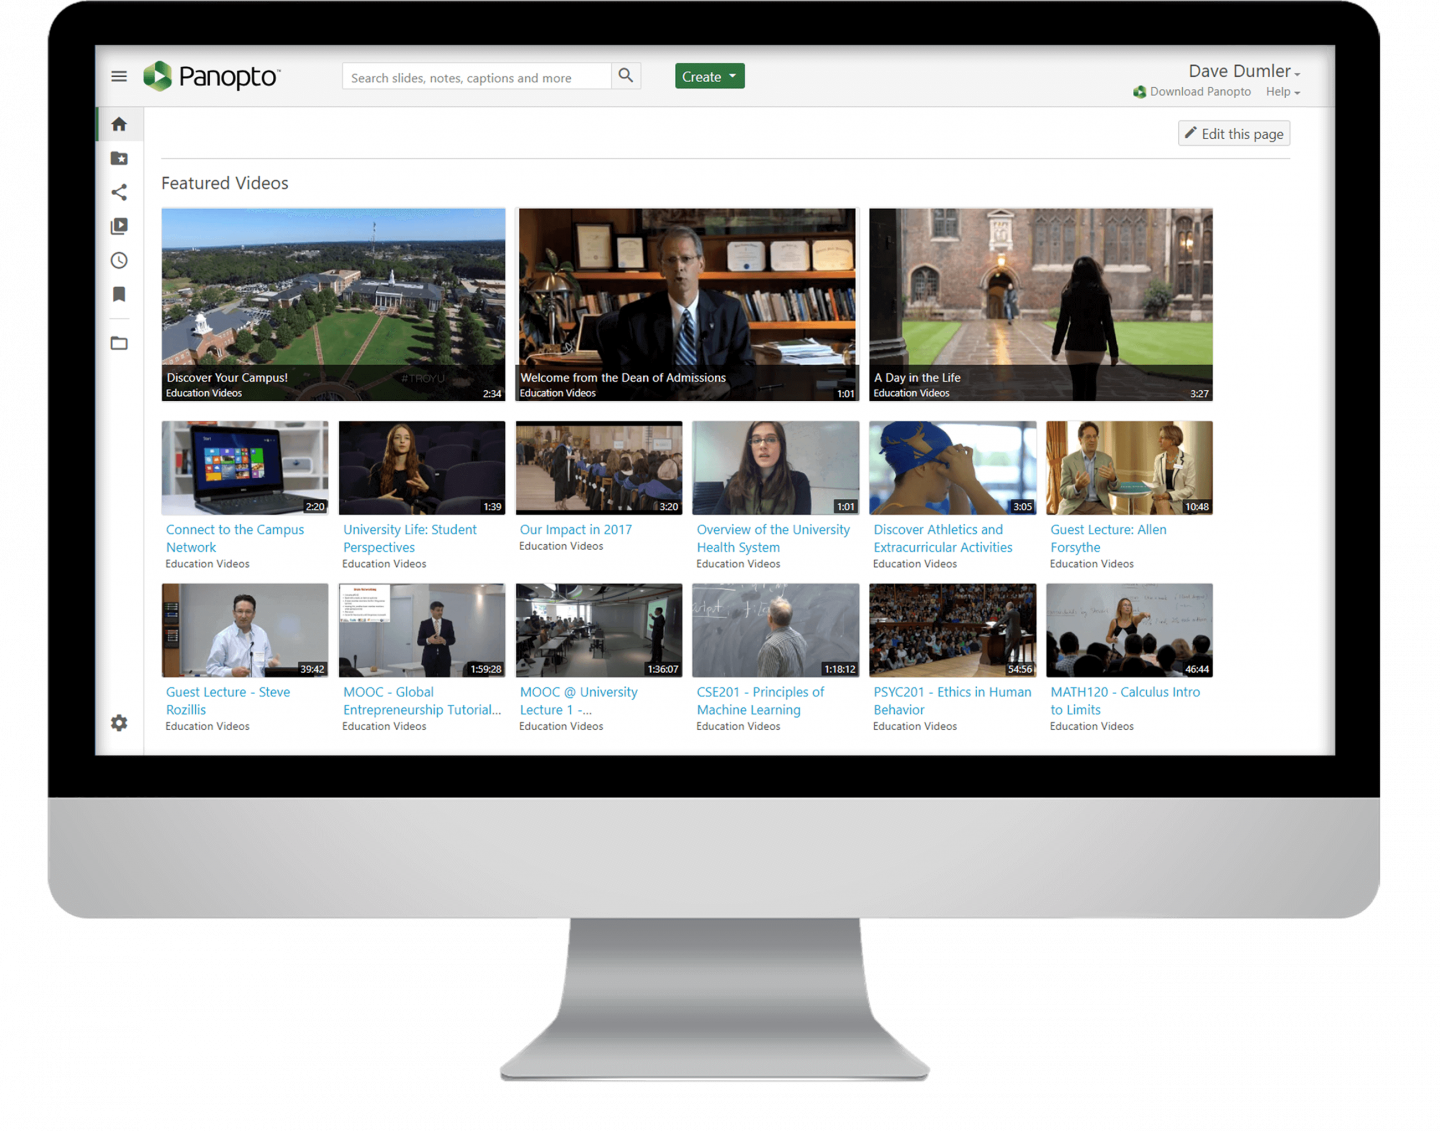 NET+ Panopto enables institutions to centrally manage all of their video assets